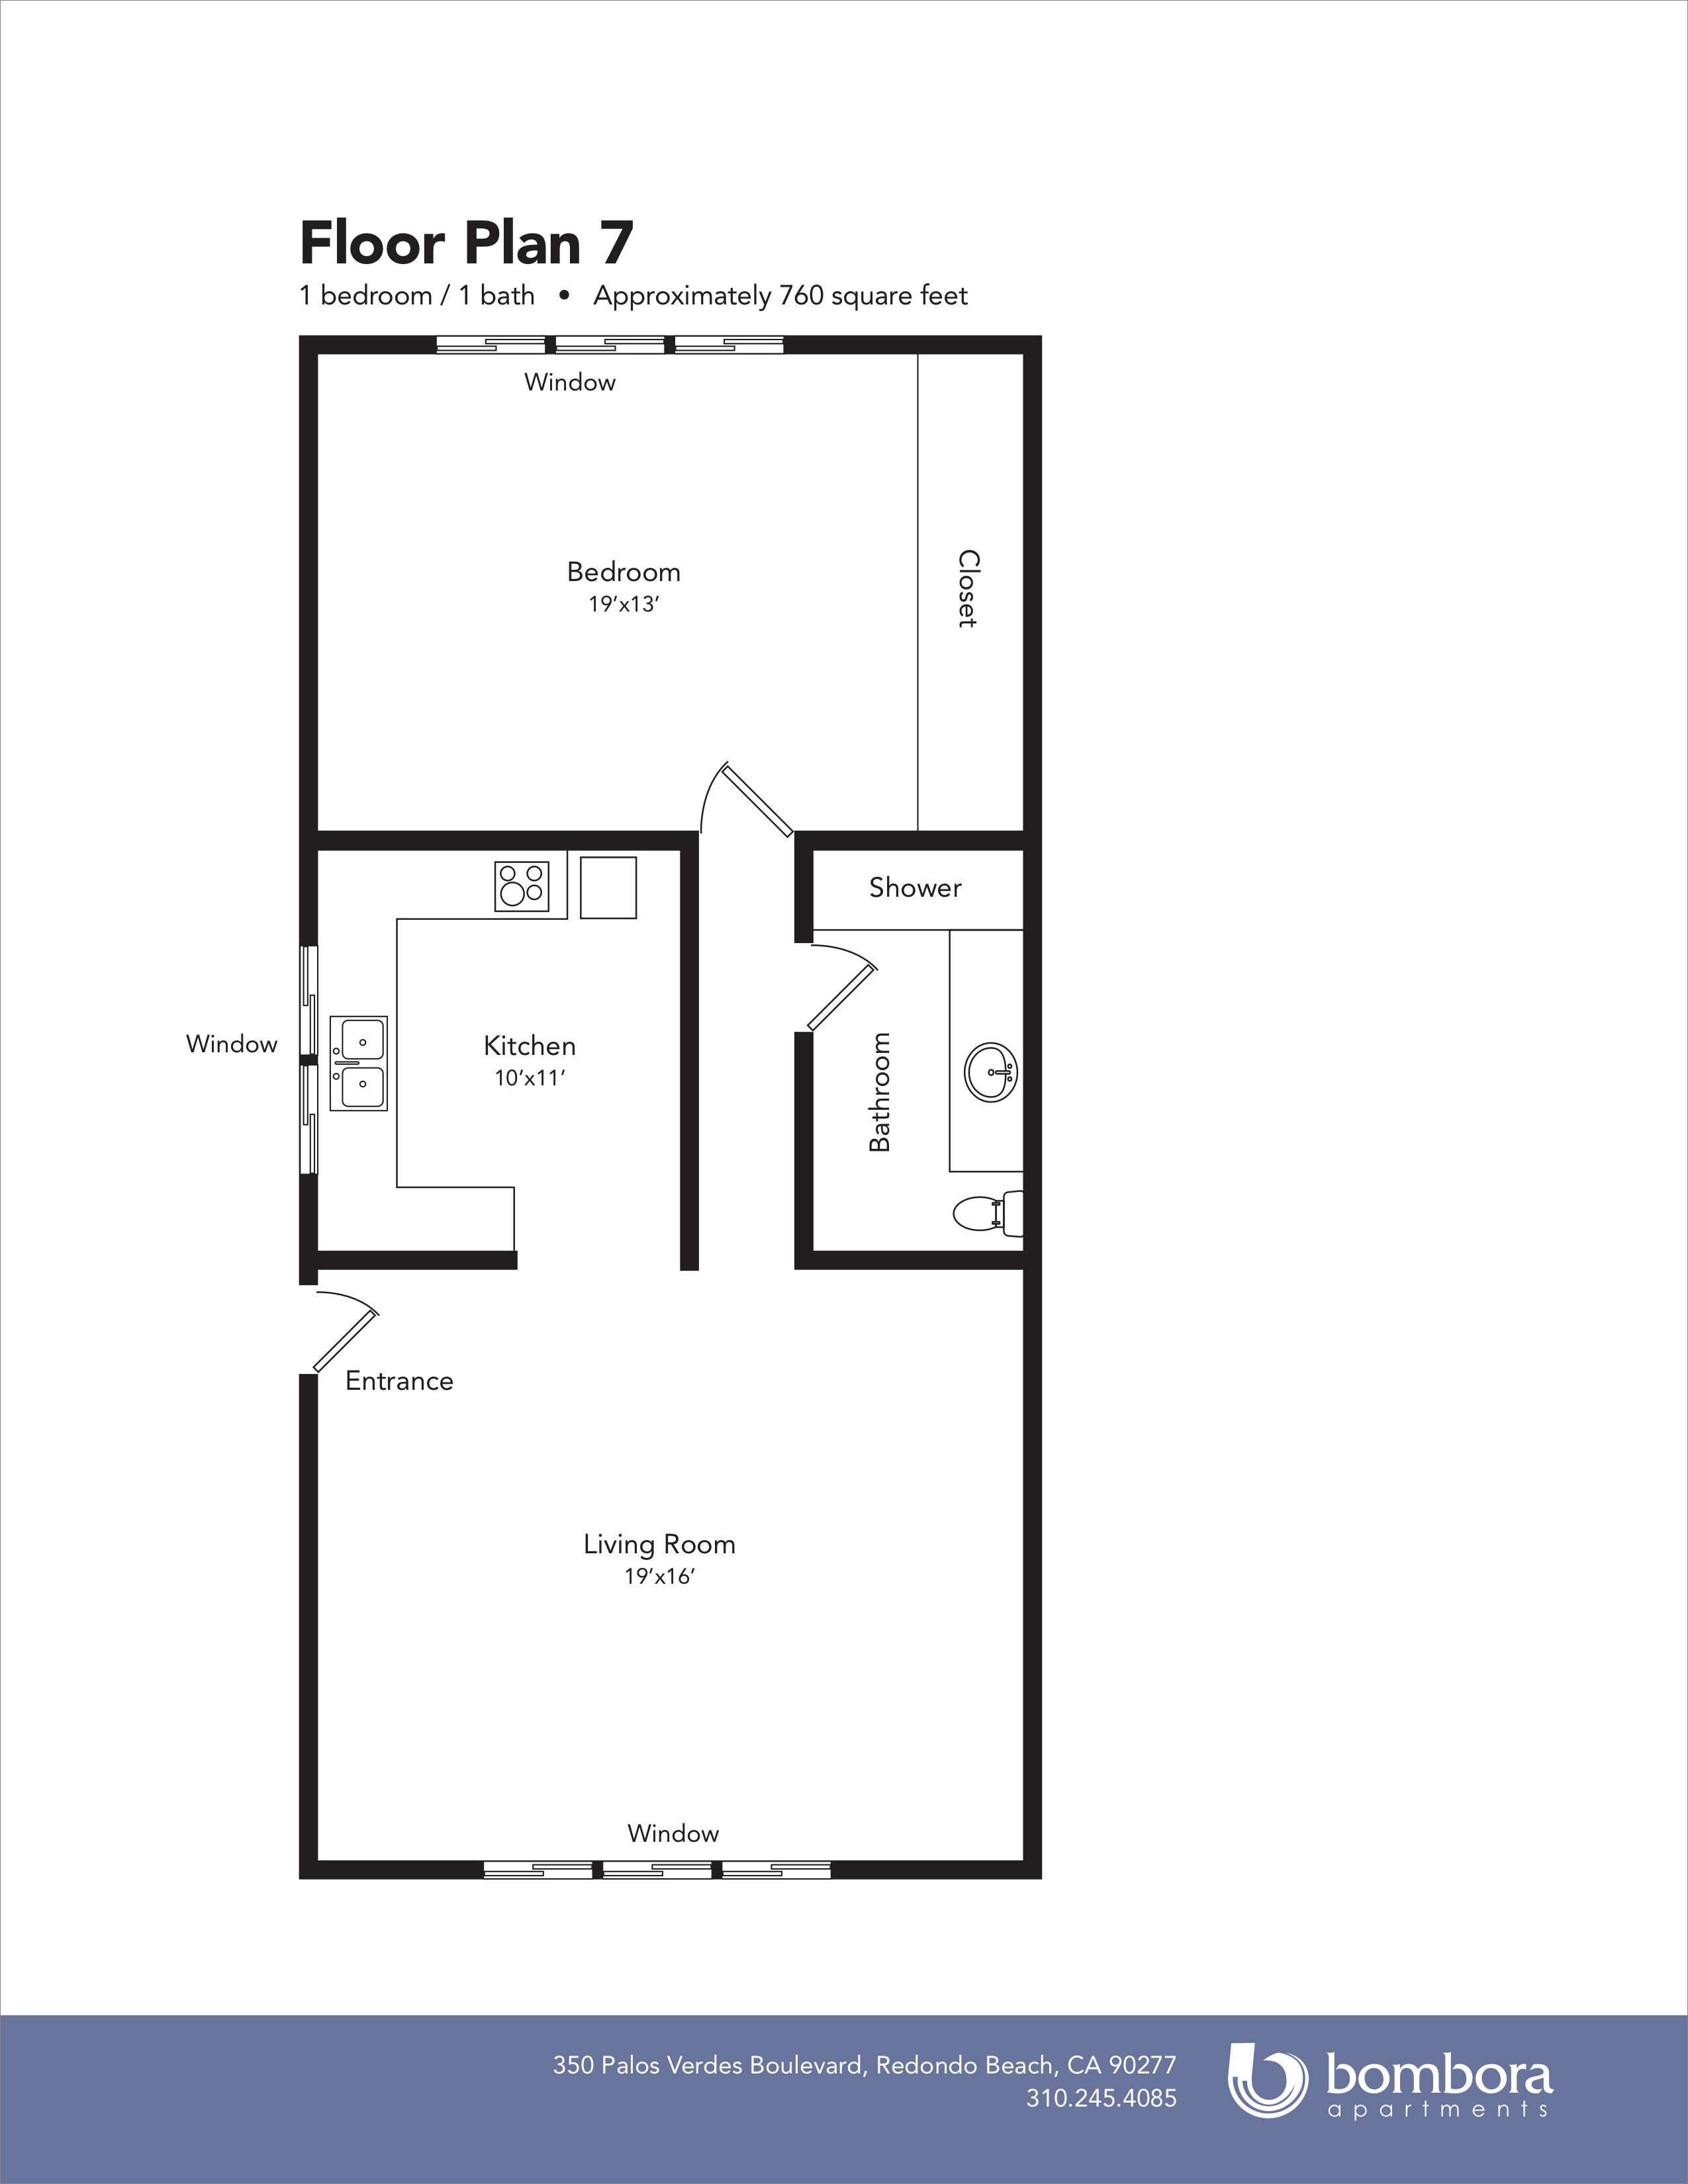 Floor Plan 7 Bombora Apartments